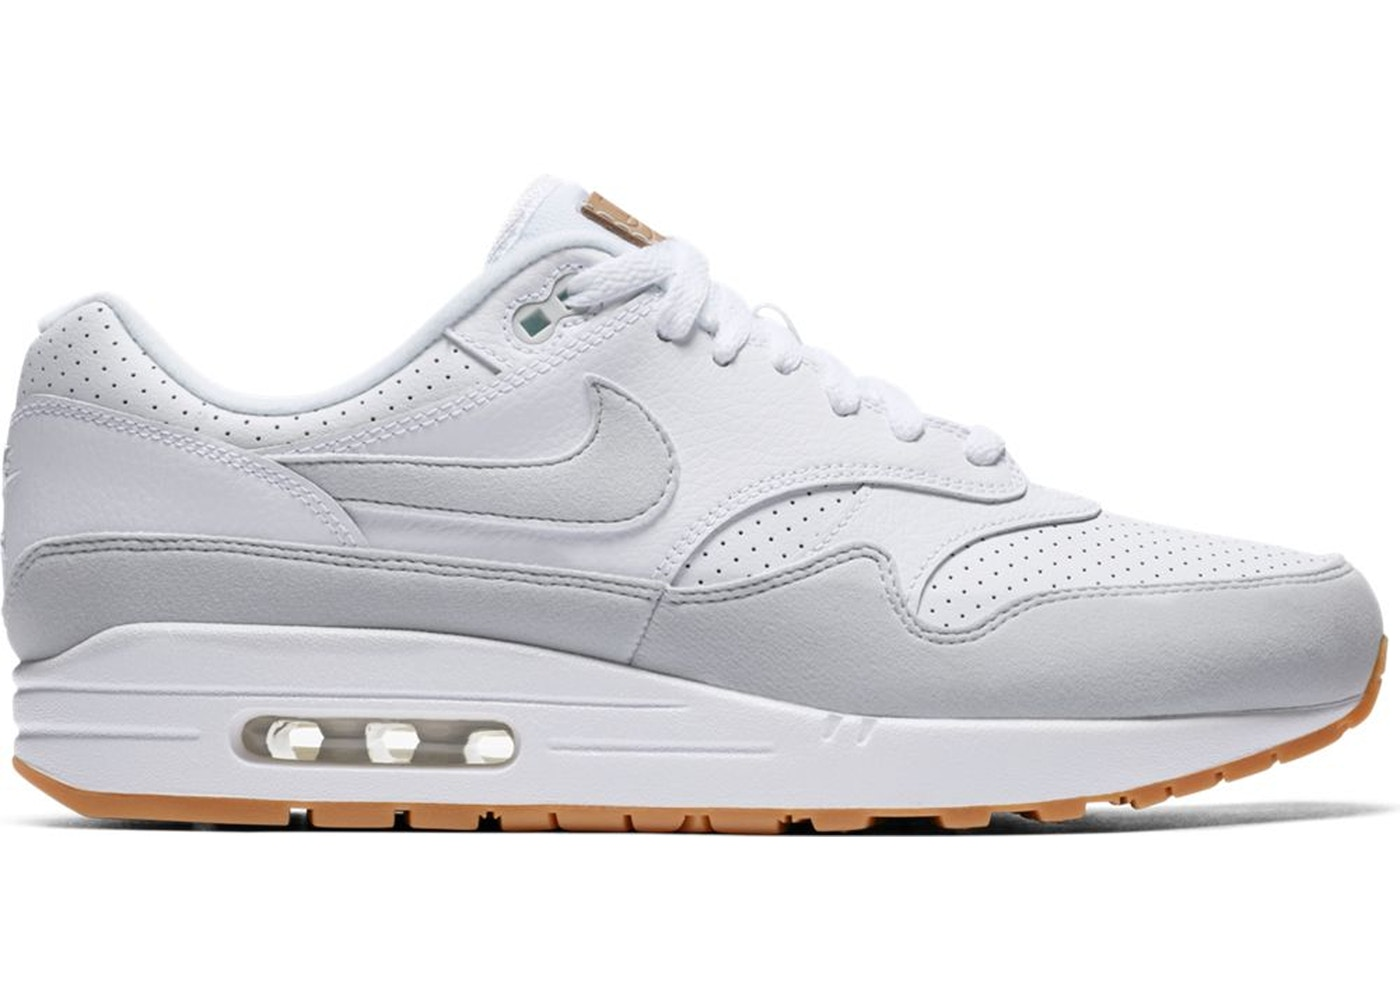 best sneakers e51e9 c1223 Nike Air Max 1 Shoes - Volatility